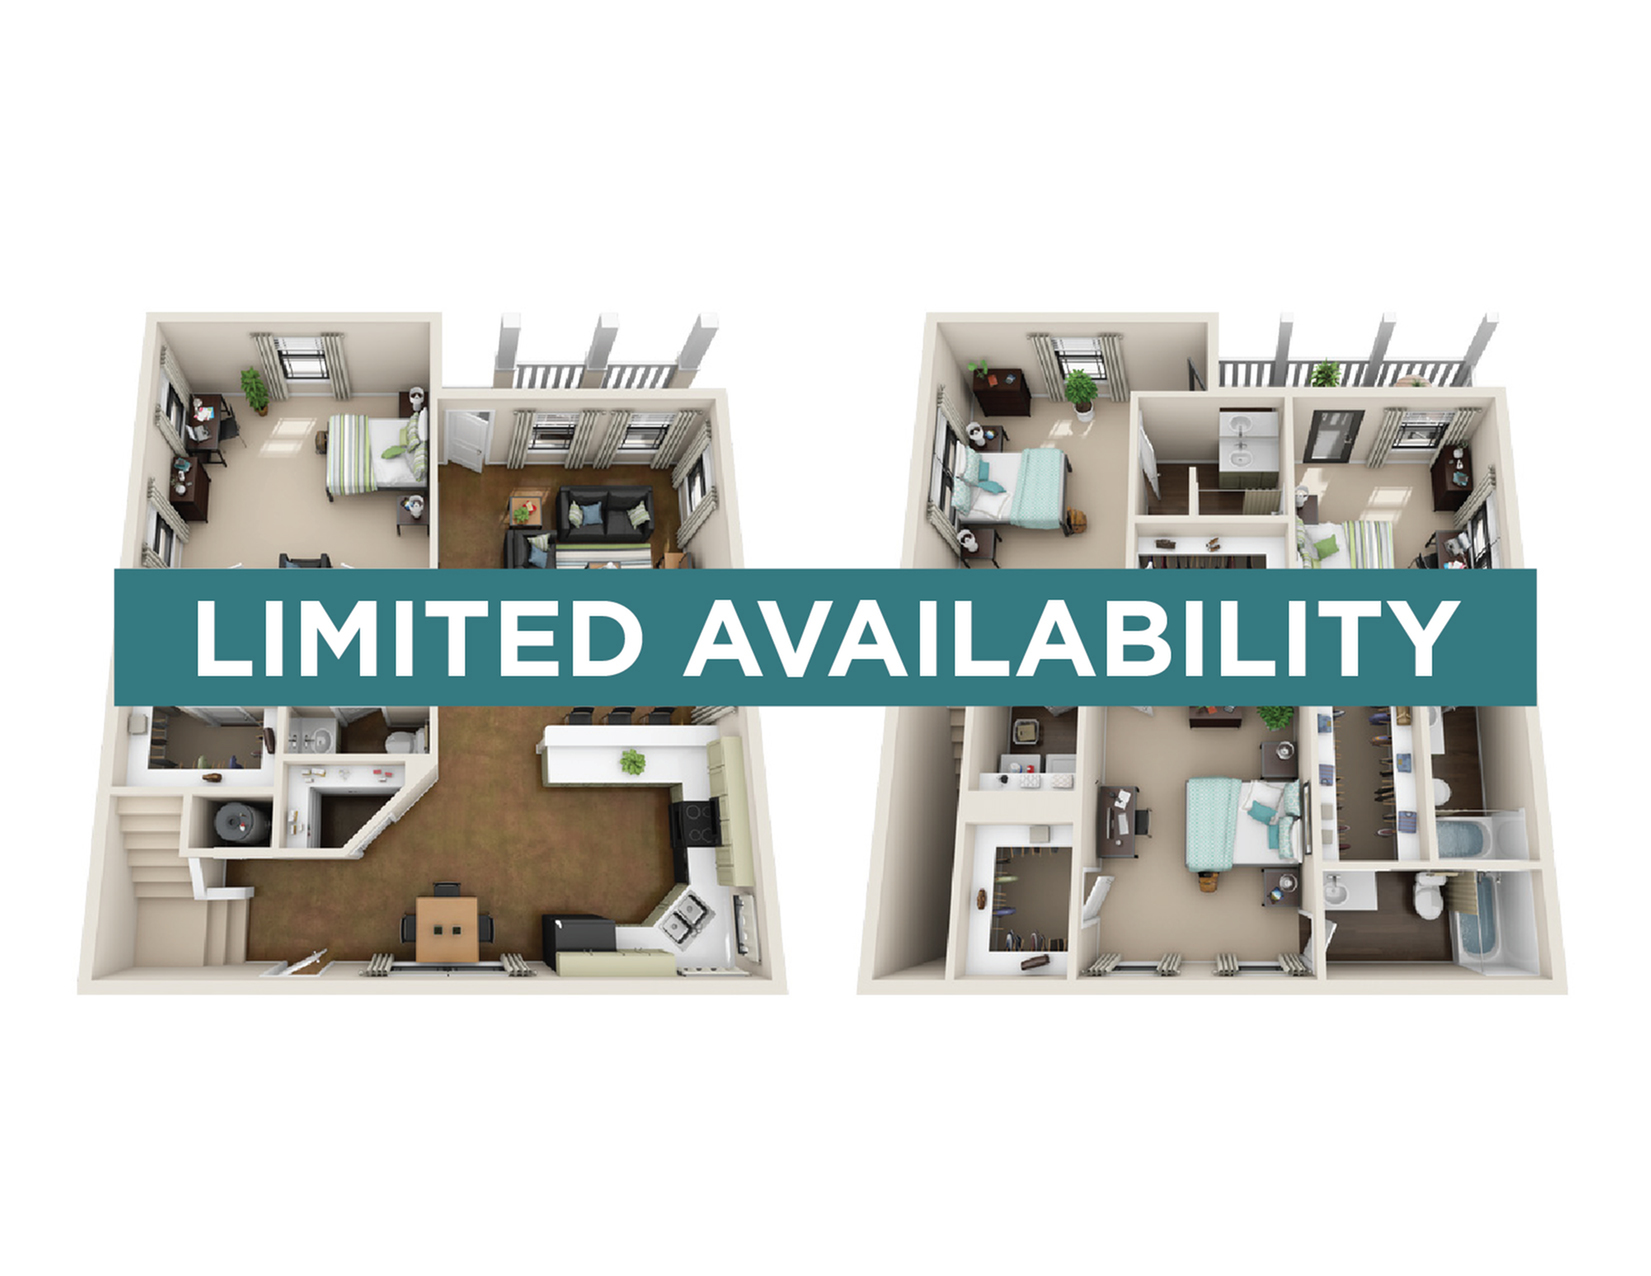 4BR/4.5BA - Furnished - limited availability